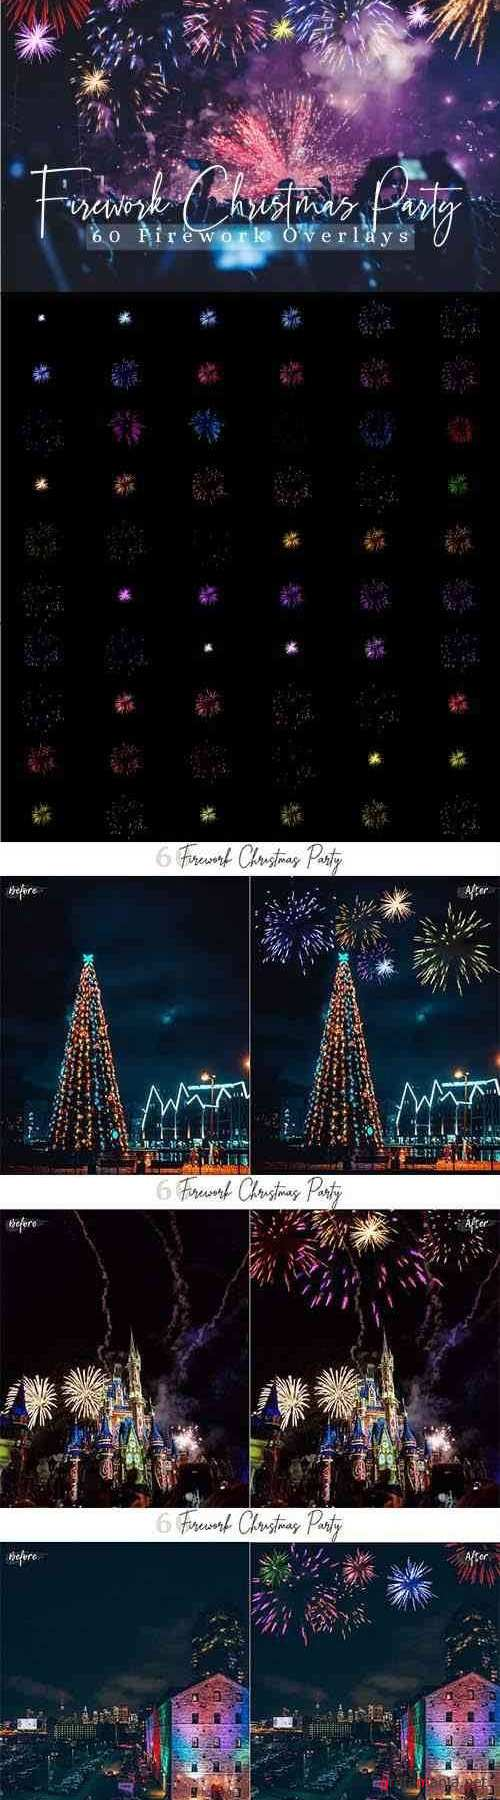 60 Firework Christmas Party Overlays - 407107